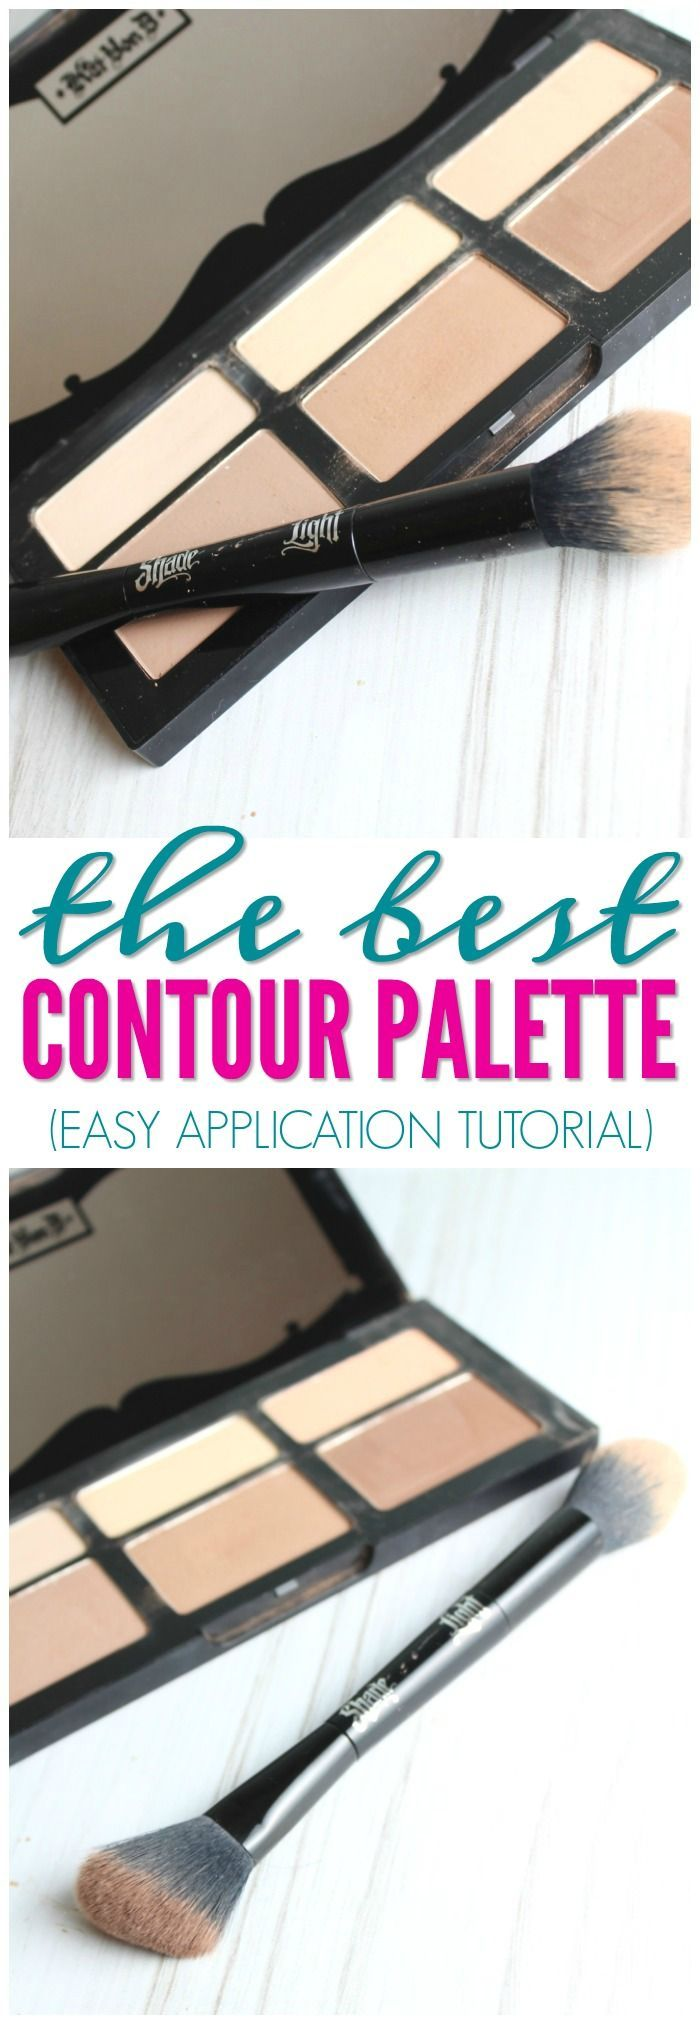 The Best Contour Palette for Summer! Here is my honest review of the Kat Von D Shade  Light Contour Palette and Brush! A favorite for summer or wedding makeup!